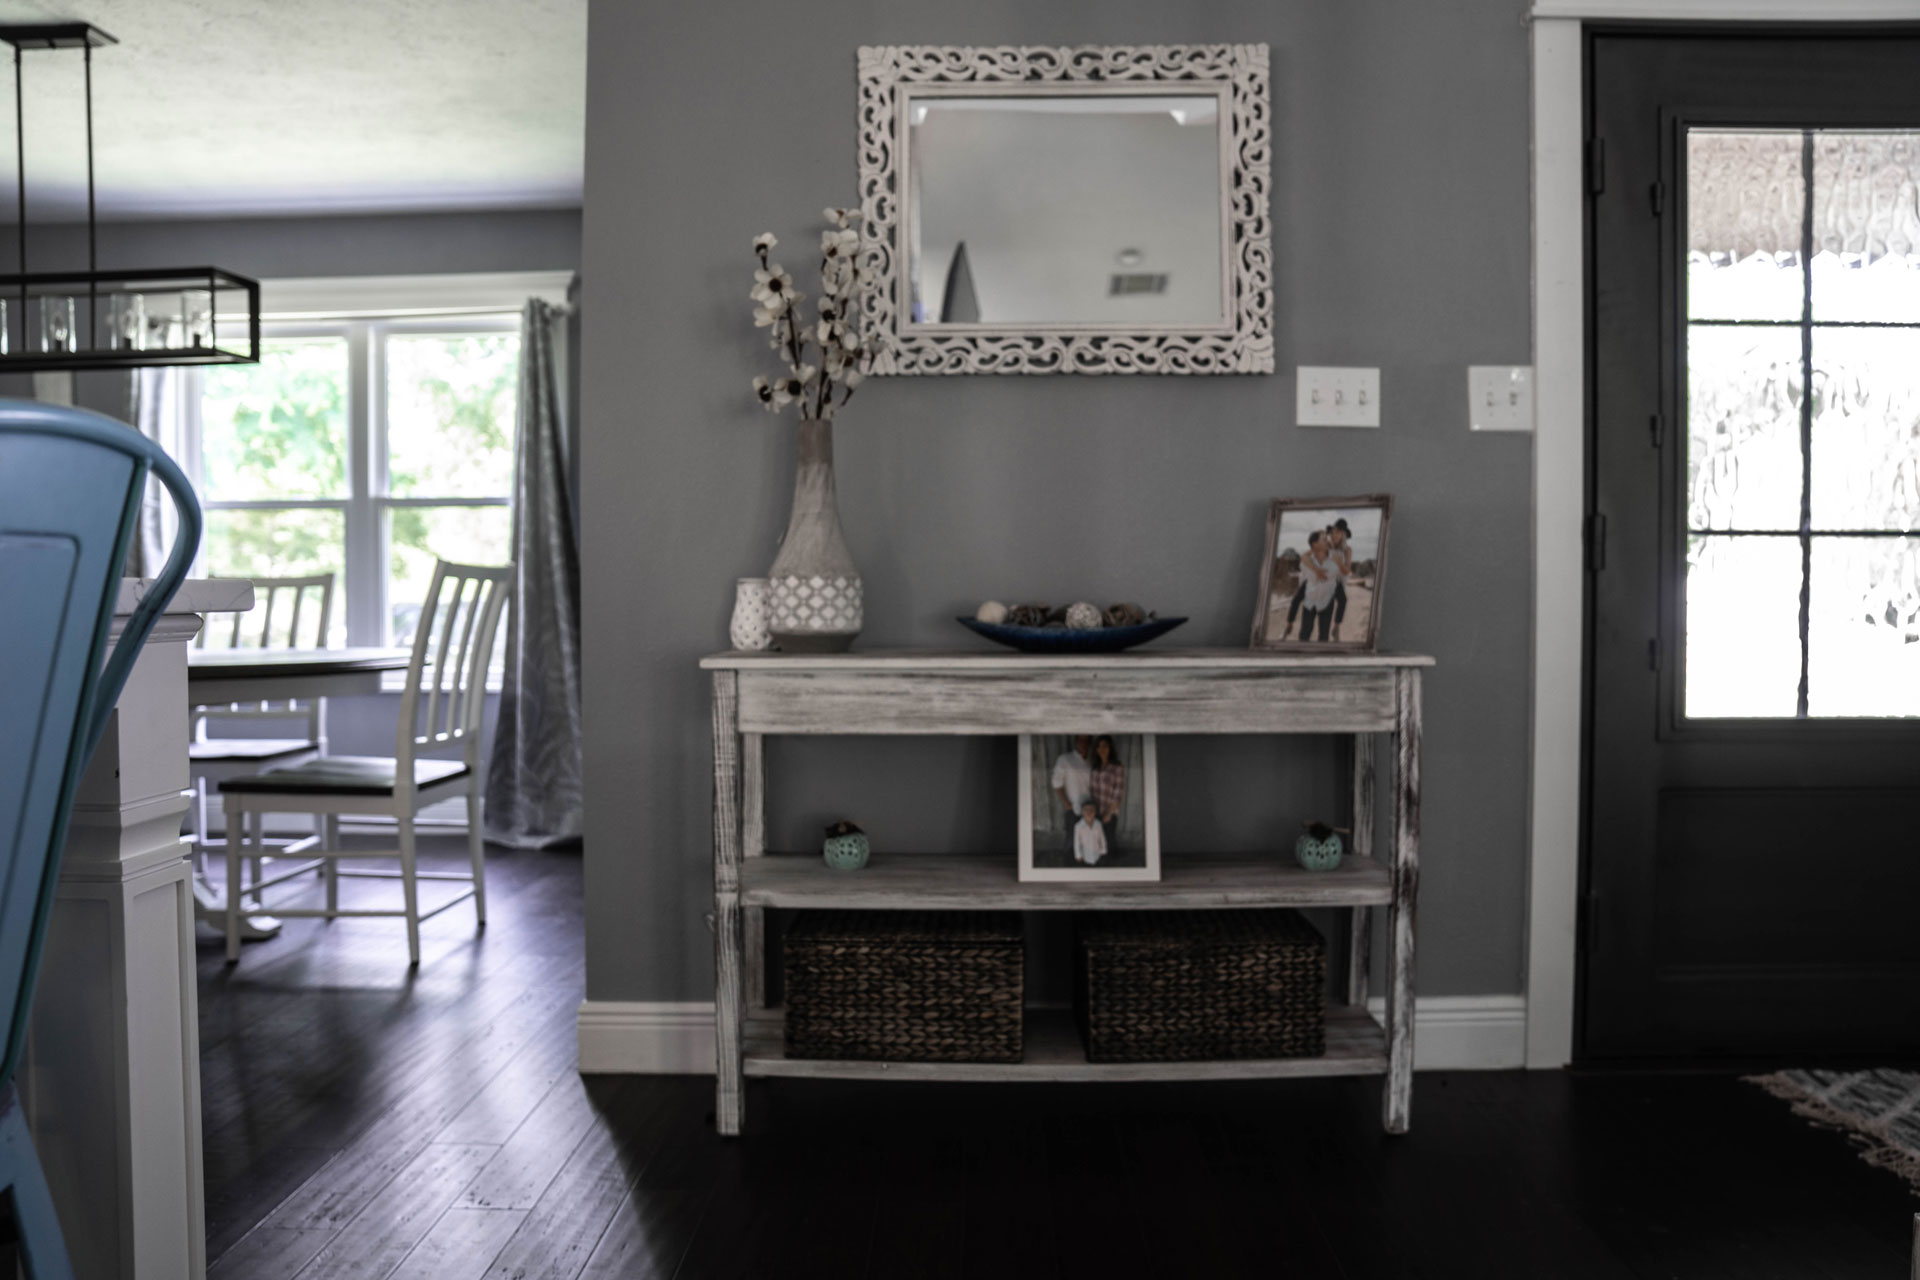 General Contractor in The Woodlands & Conroe